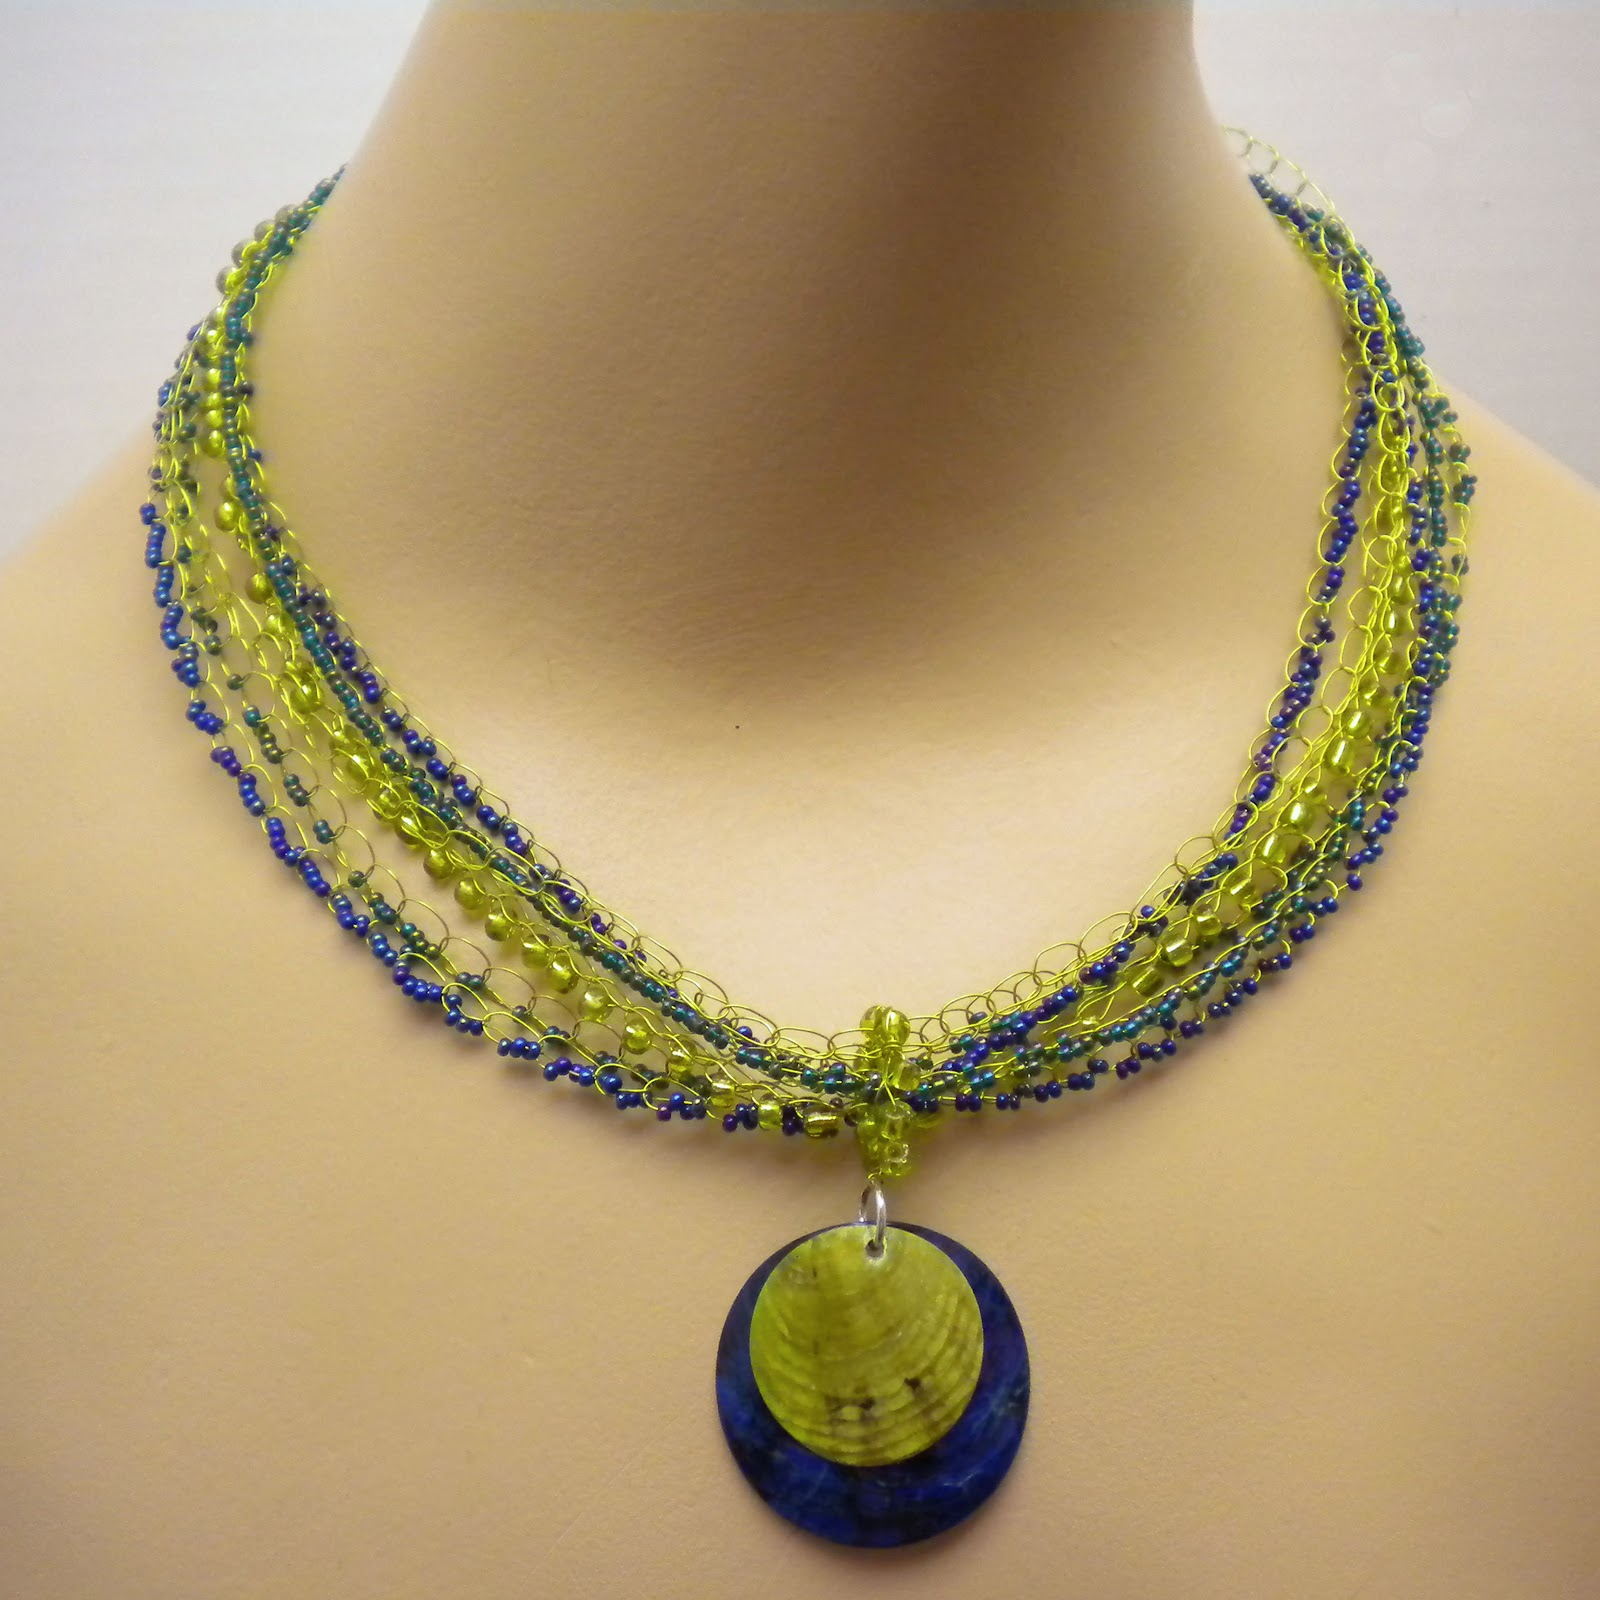 Crochet Necklace : Be~Jeweled by jana: Mermaid Wire Crochet Necklace